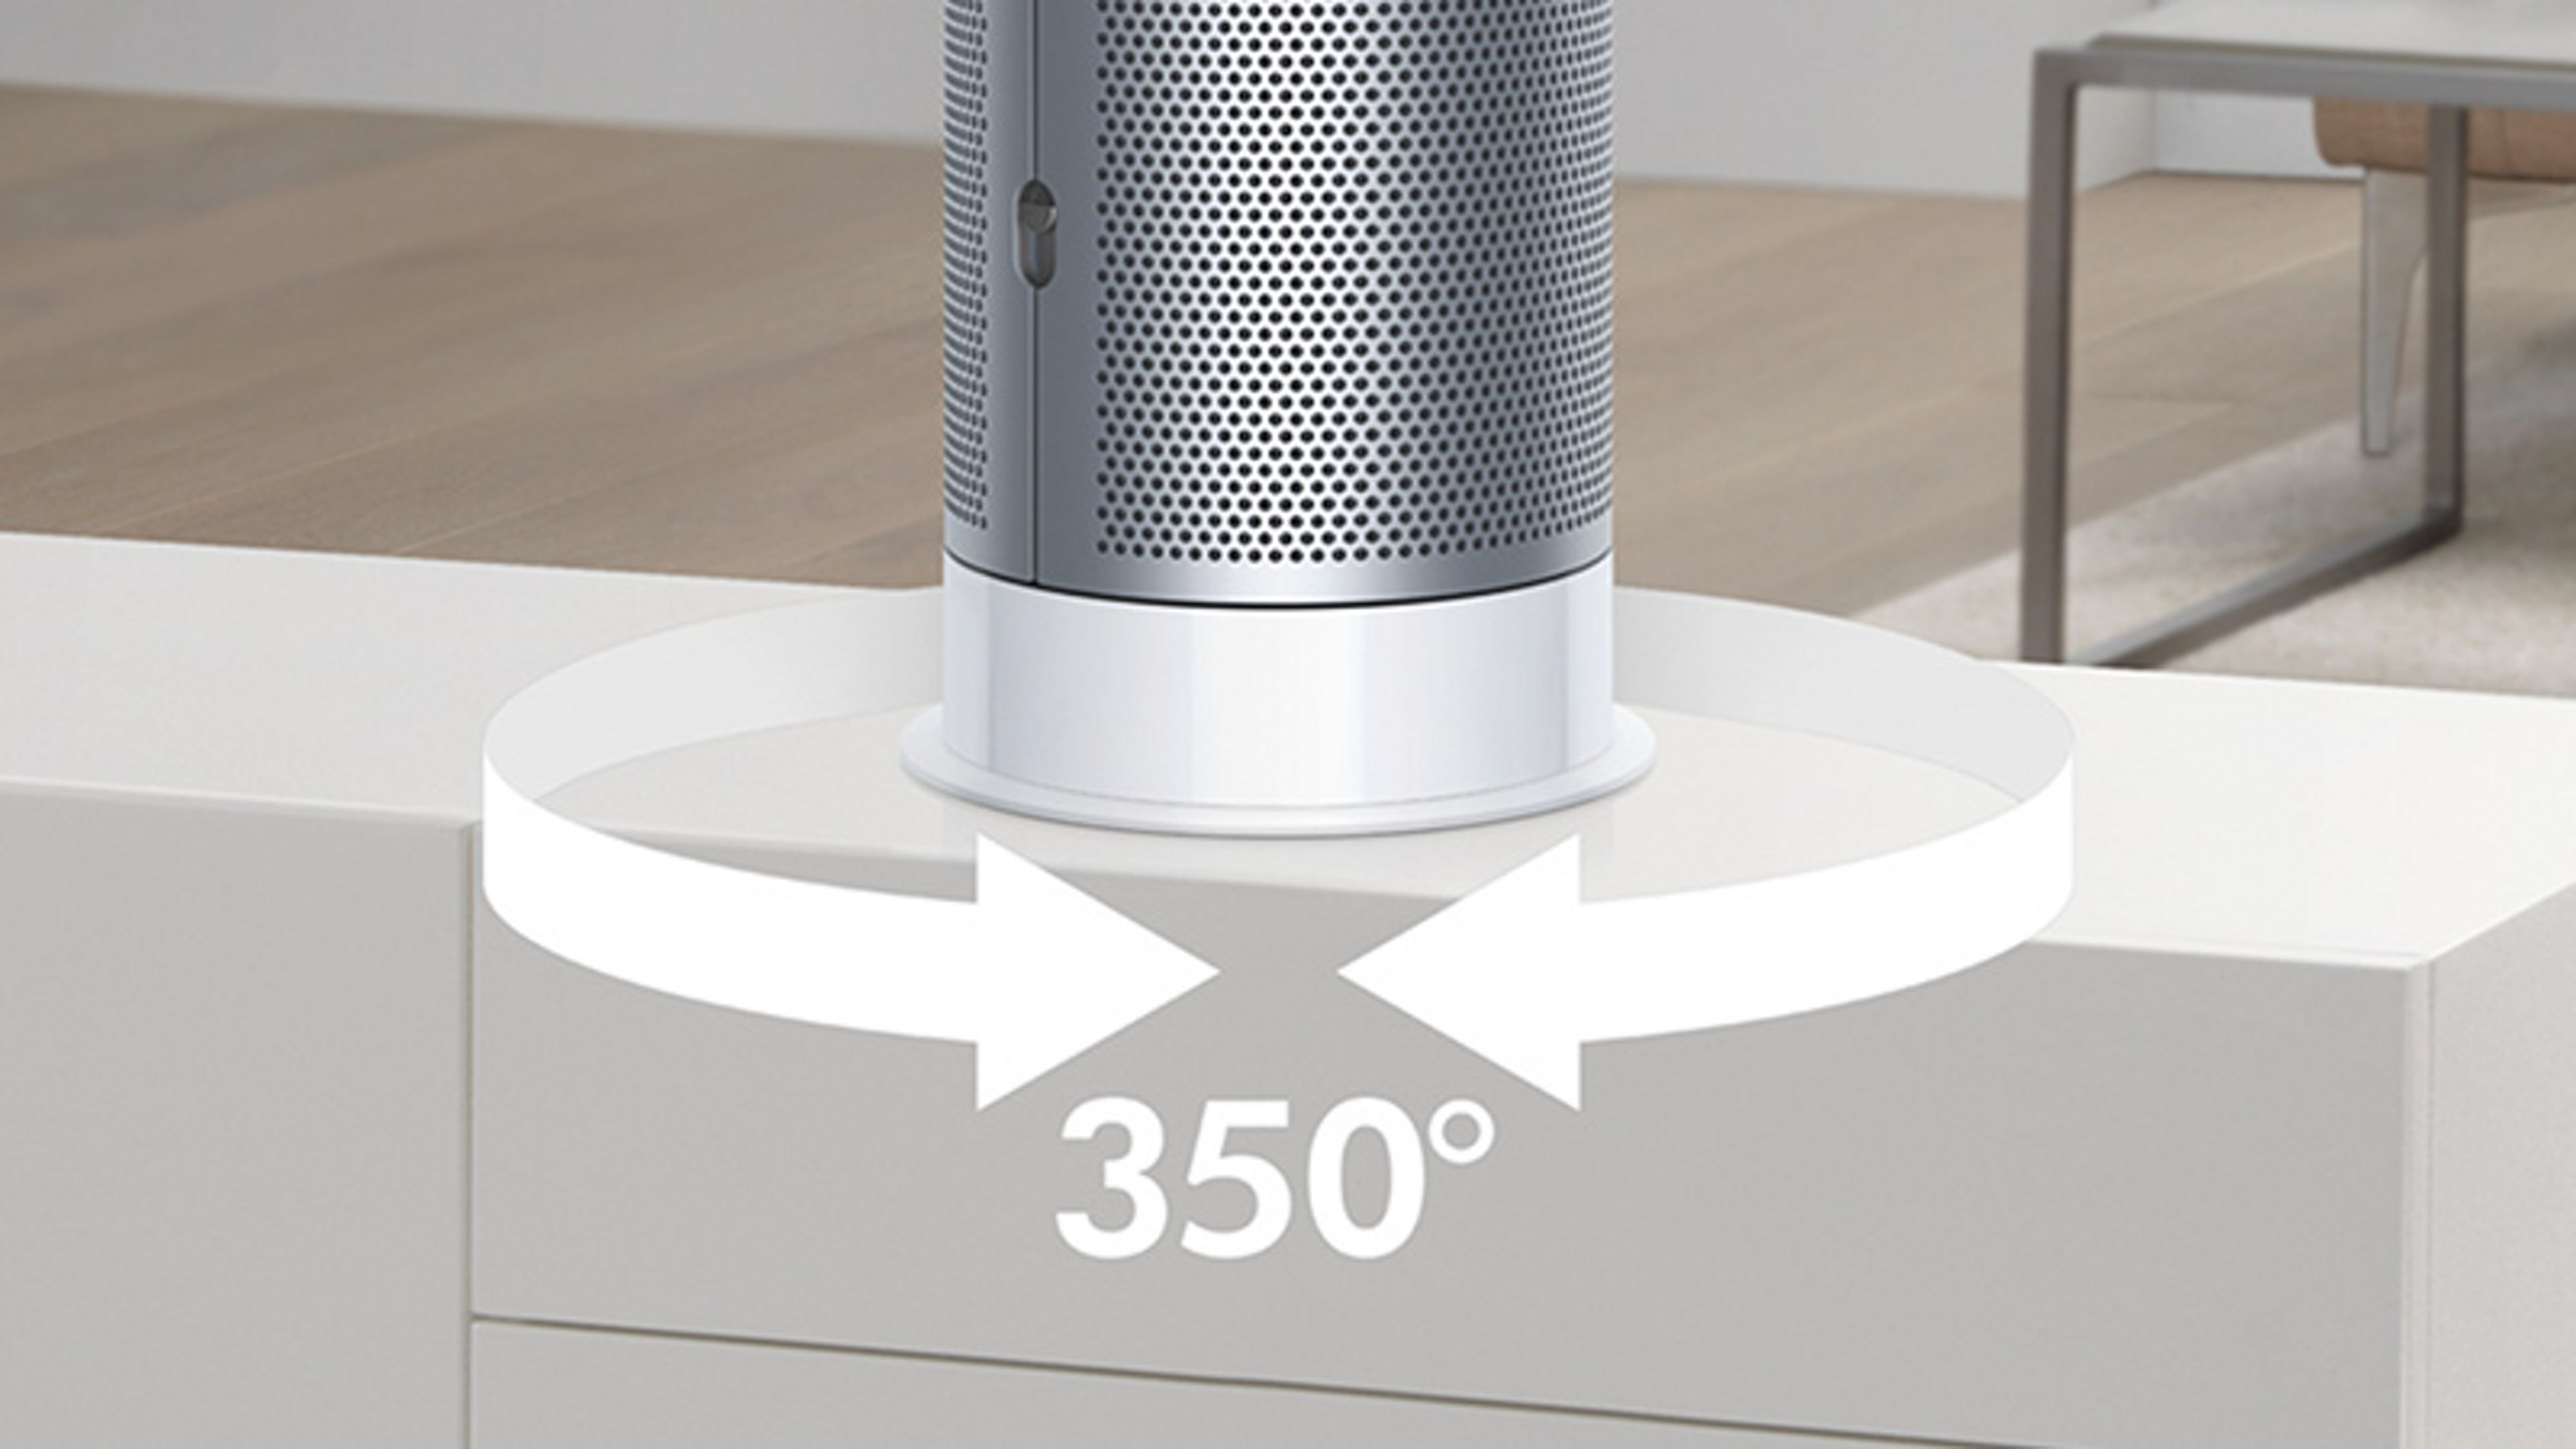 Shows air being purified around the room, with oscillation mode